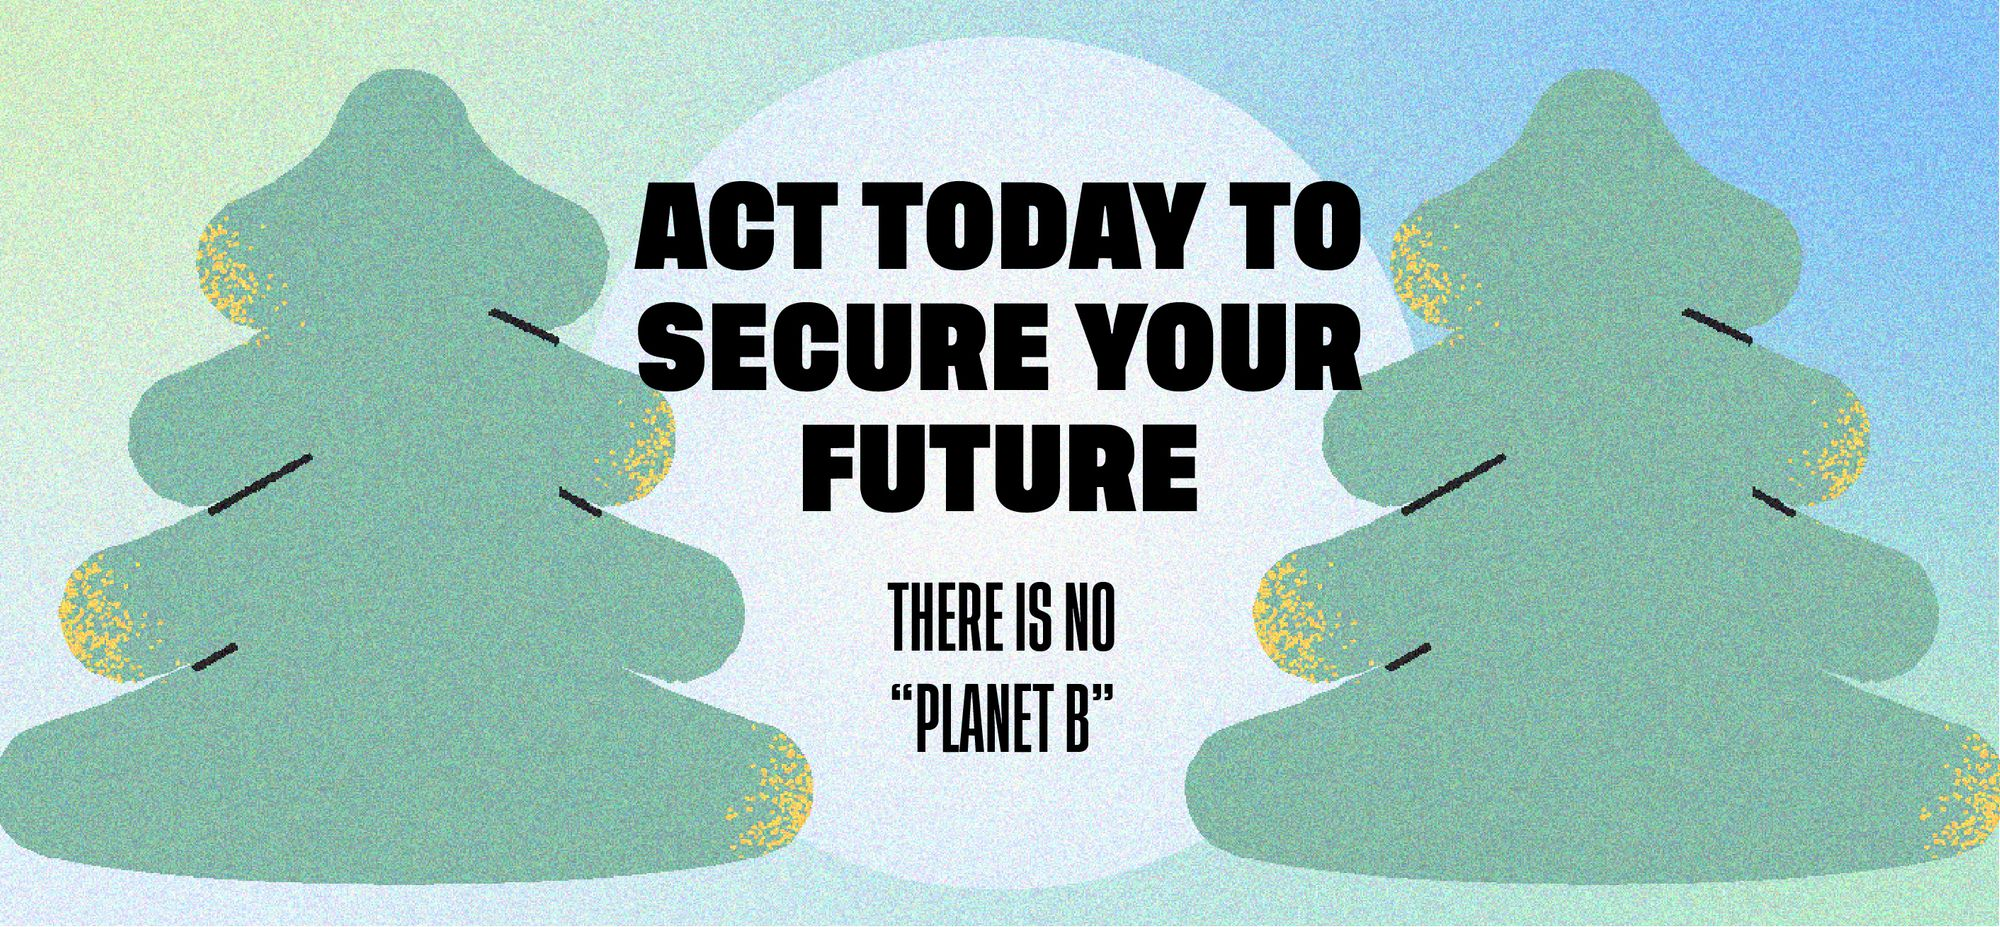 """Act today to secure your future. There is no """"Planet B""""."""